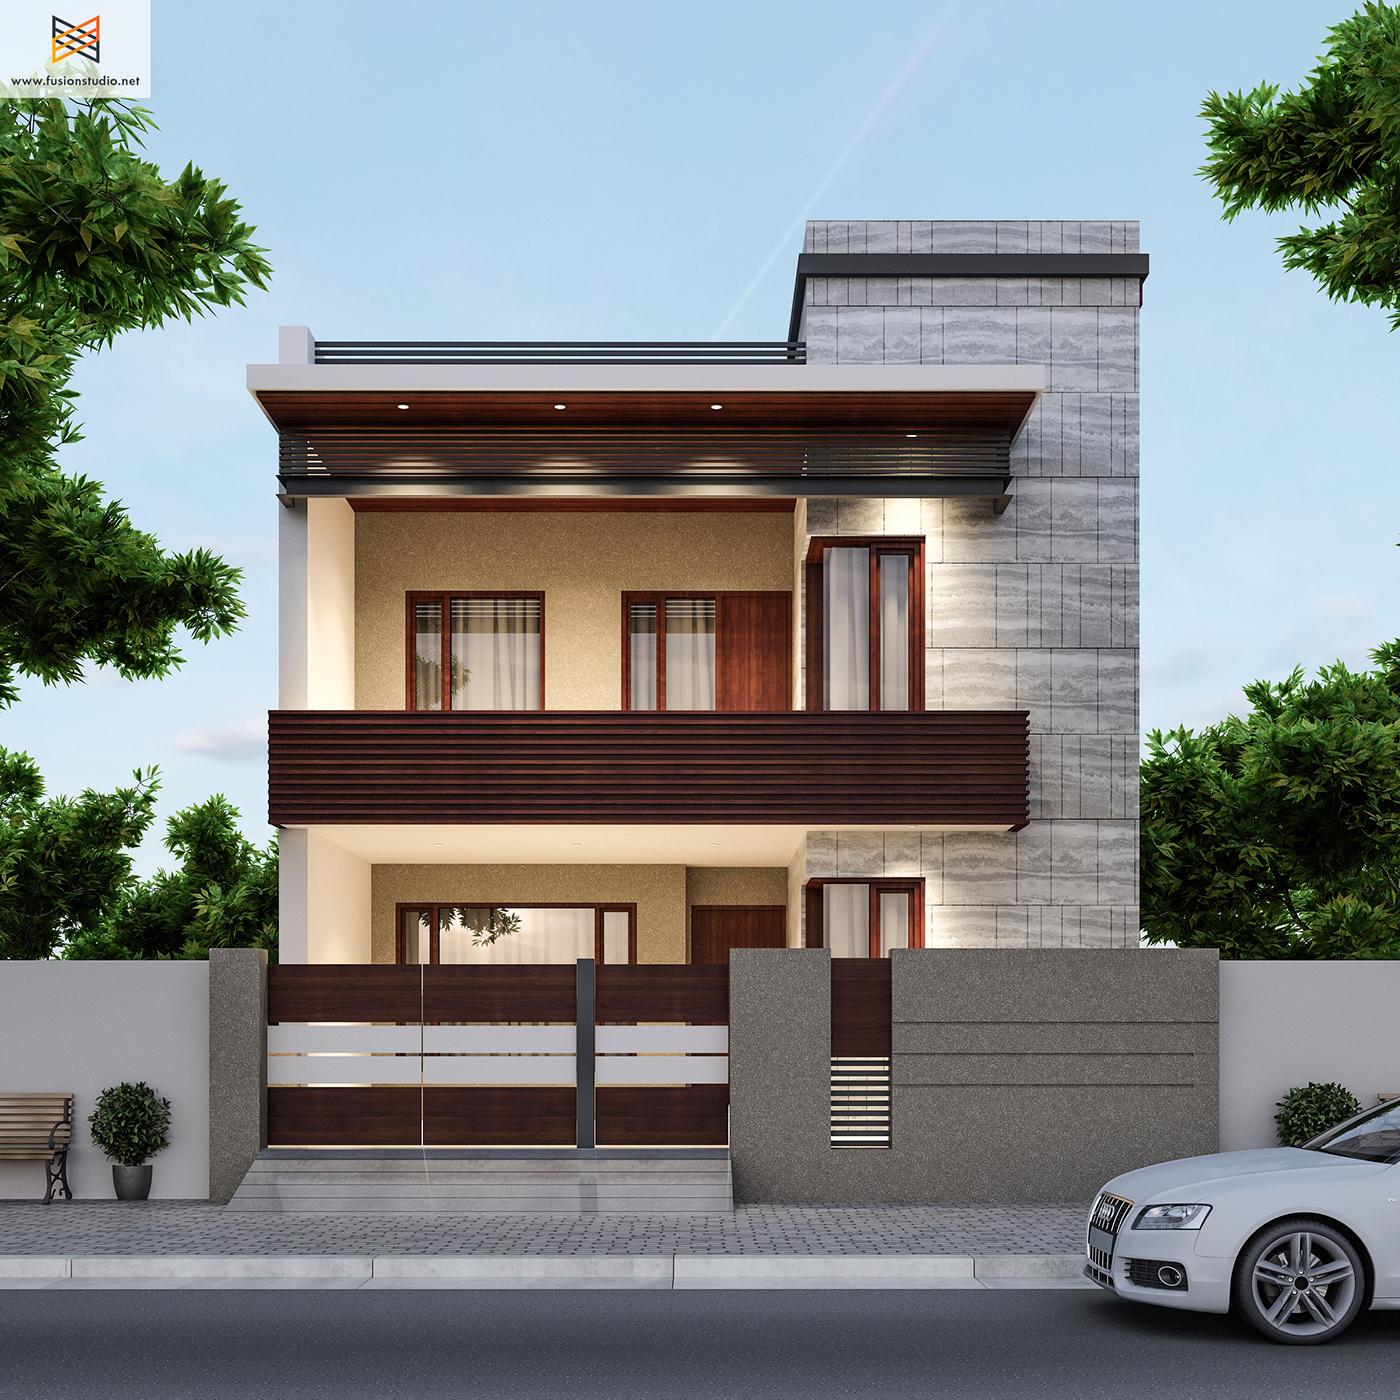 Home Design Ideas Bangalore: 250 Yards House Elevation On Behance